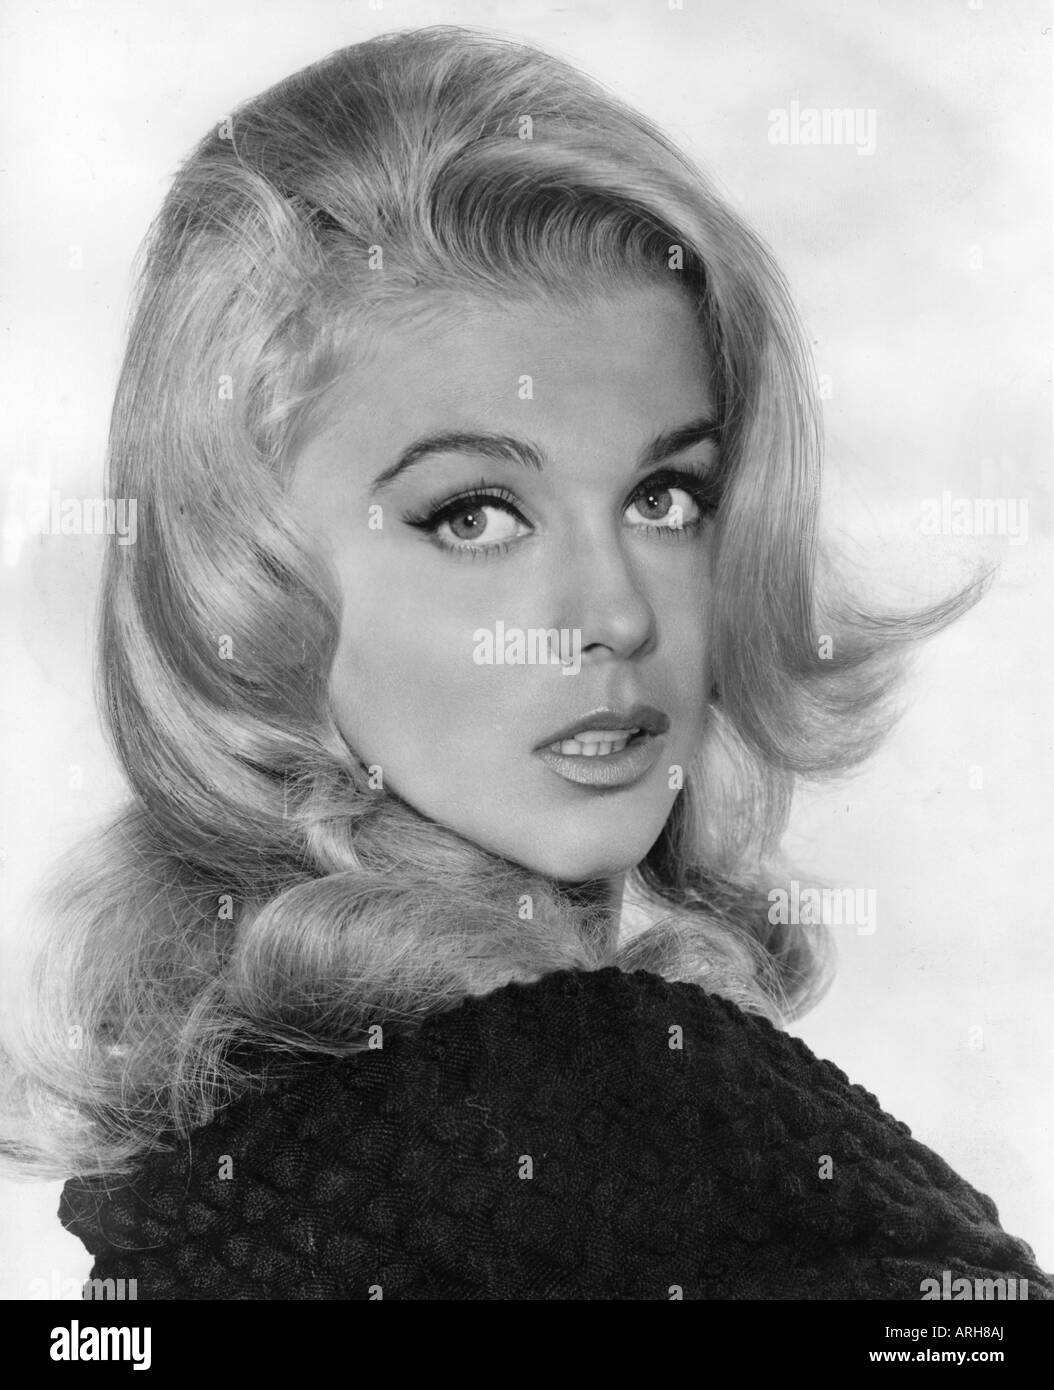 Ann-Margret, * 28.4.1941, Swedish actress, portrait, early 1960s, studio, birth name Ann-Margret Olsson, Ann Margret, - Stock Image